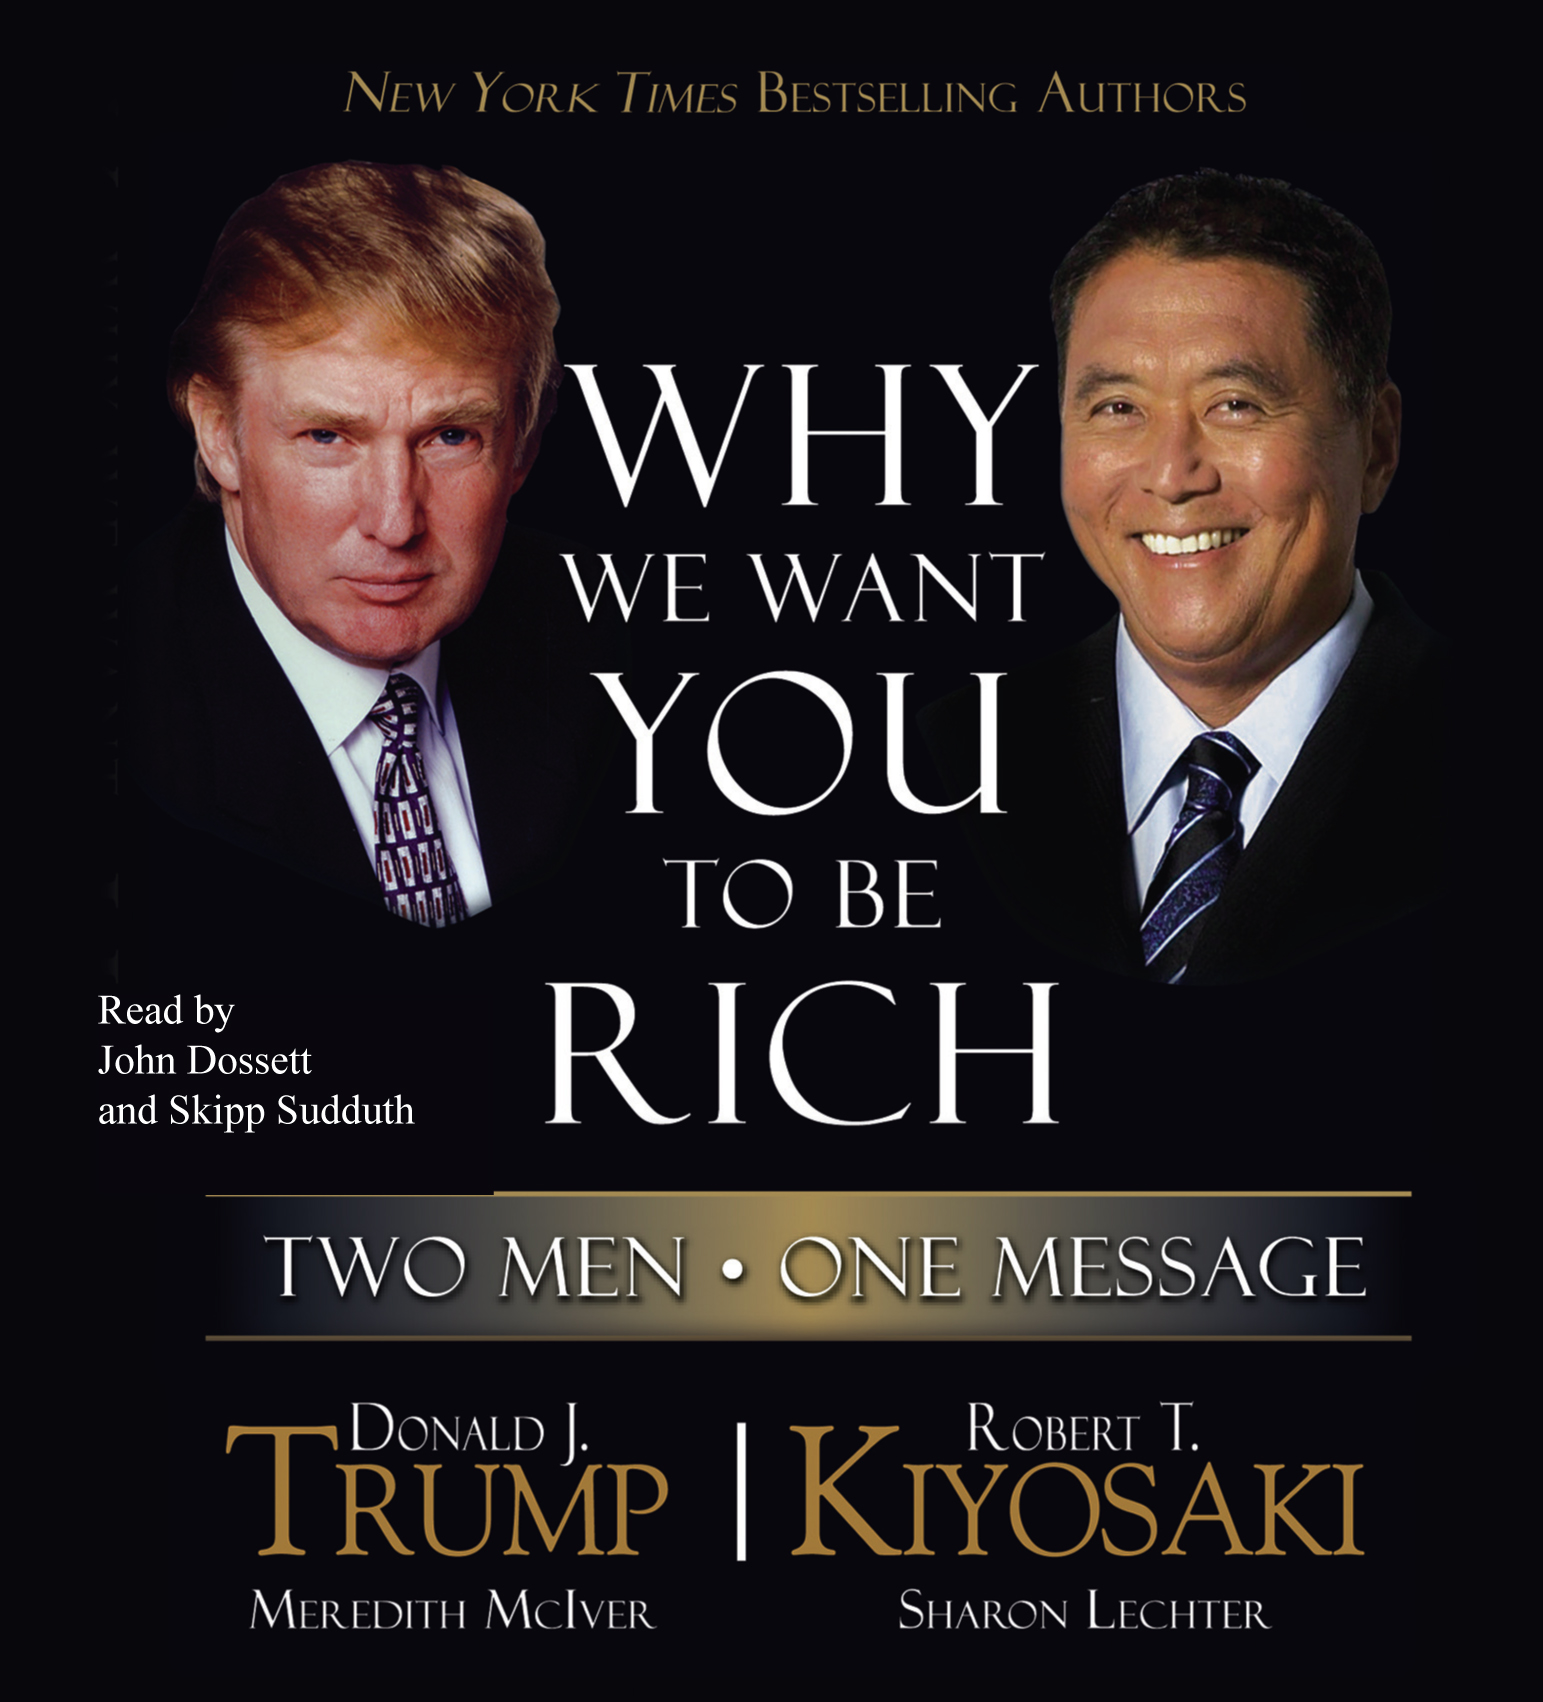 Robert Kiyosaki Libros Gratis Why We Want You To Be Rich Audiobook By Donald J Trump